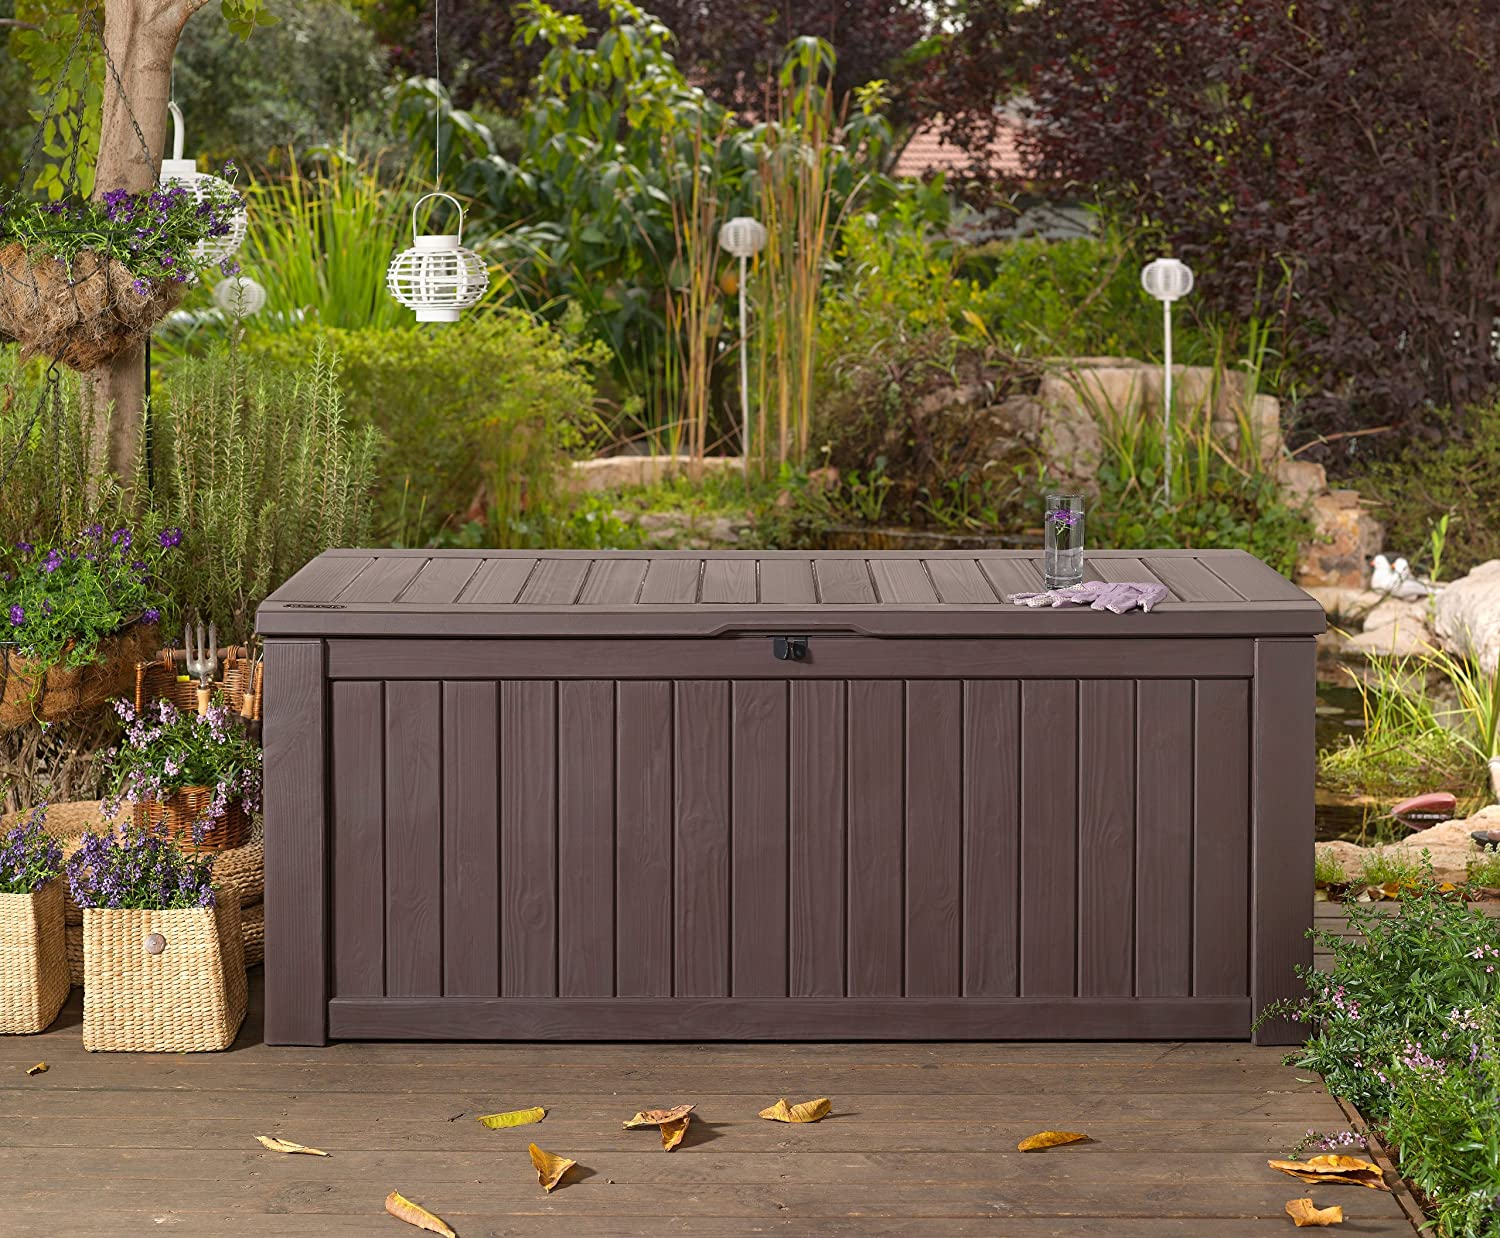 Charmant GARDEN STORAGE BENCH BOX LARGE 570L KETER RESIN FURNITURE LOCKABLE  WATERPROOF: Amazon.co.uk: Garden U0026 Outdoors